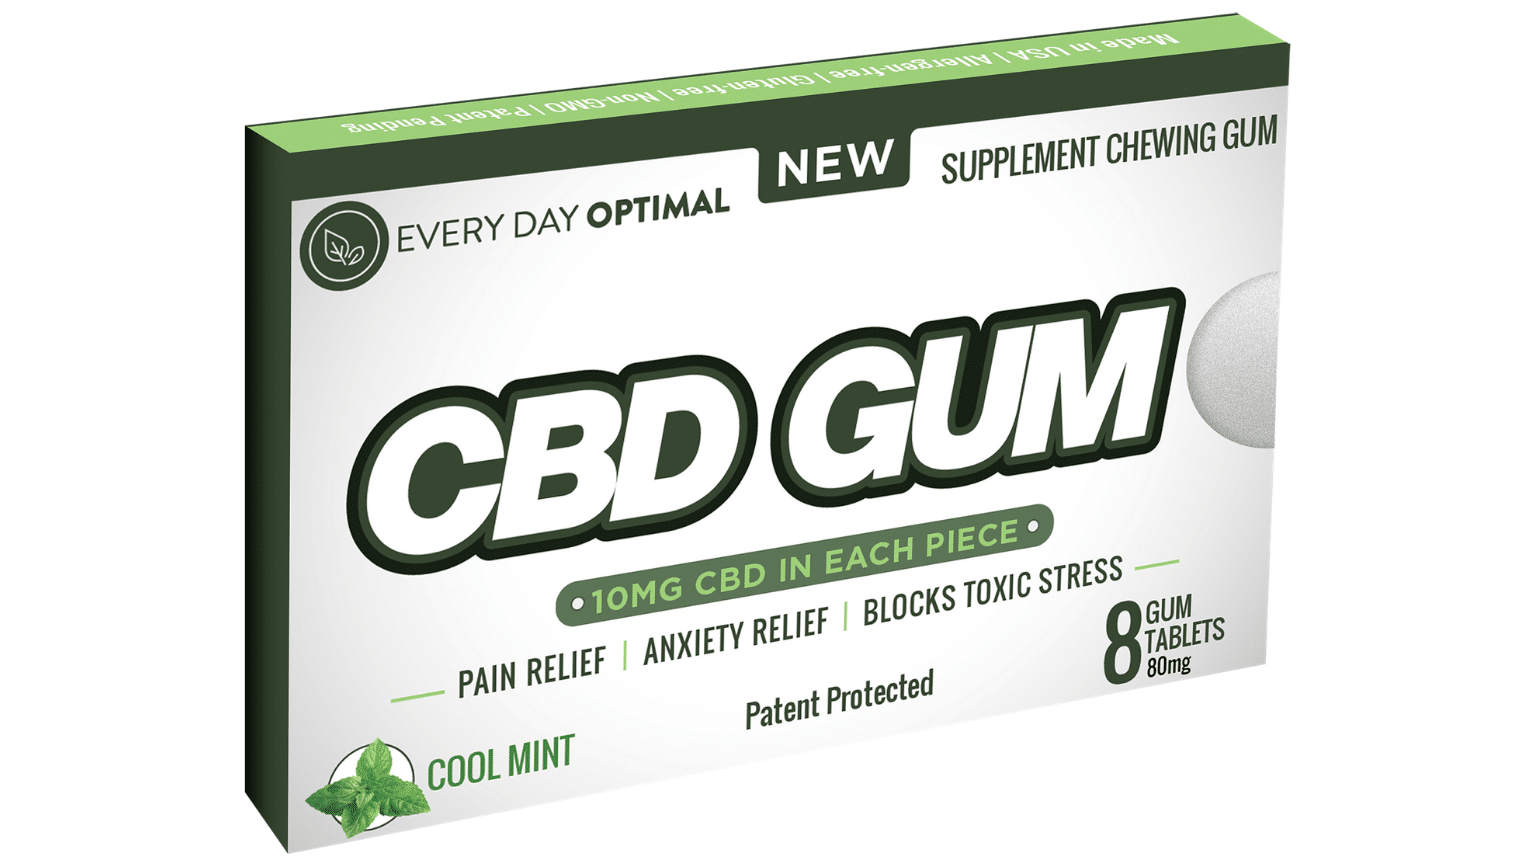 every-day-optimal-cbd-gum